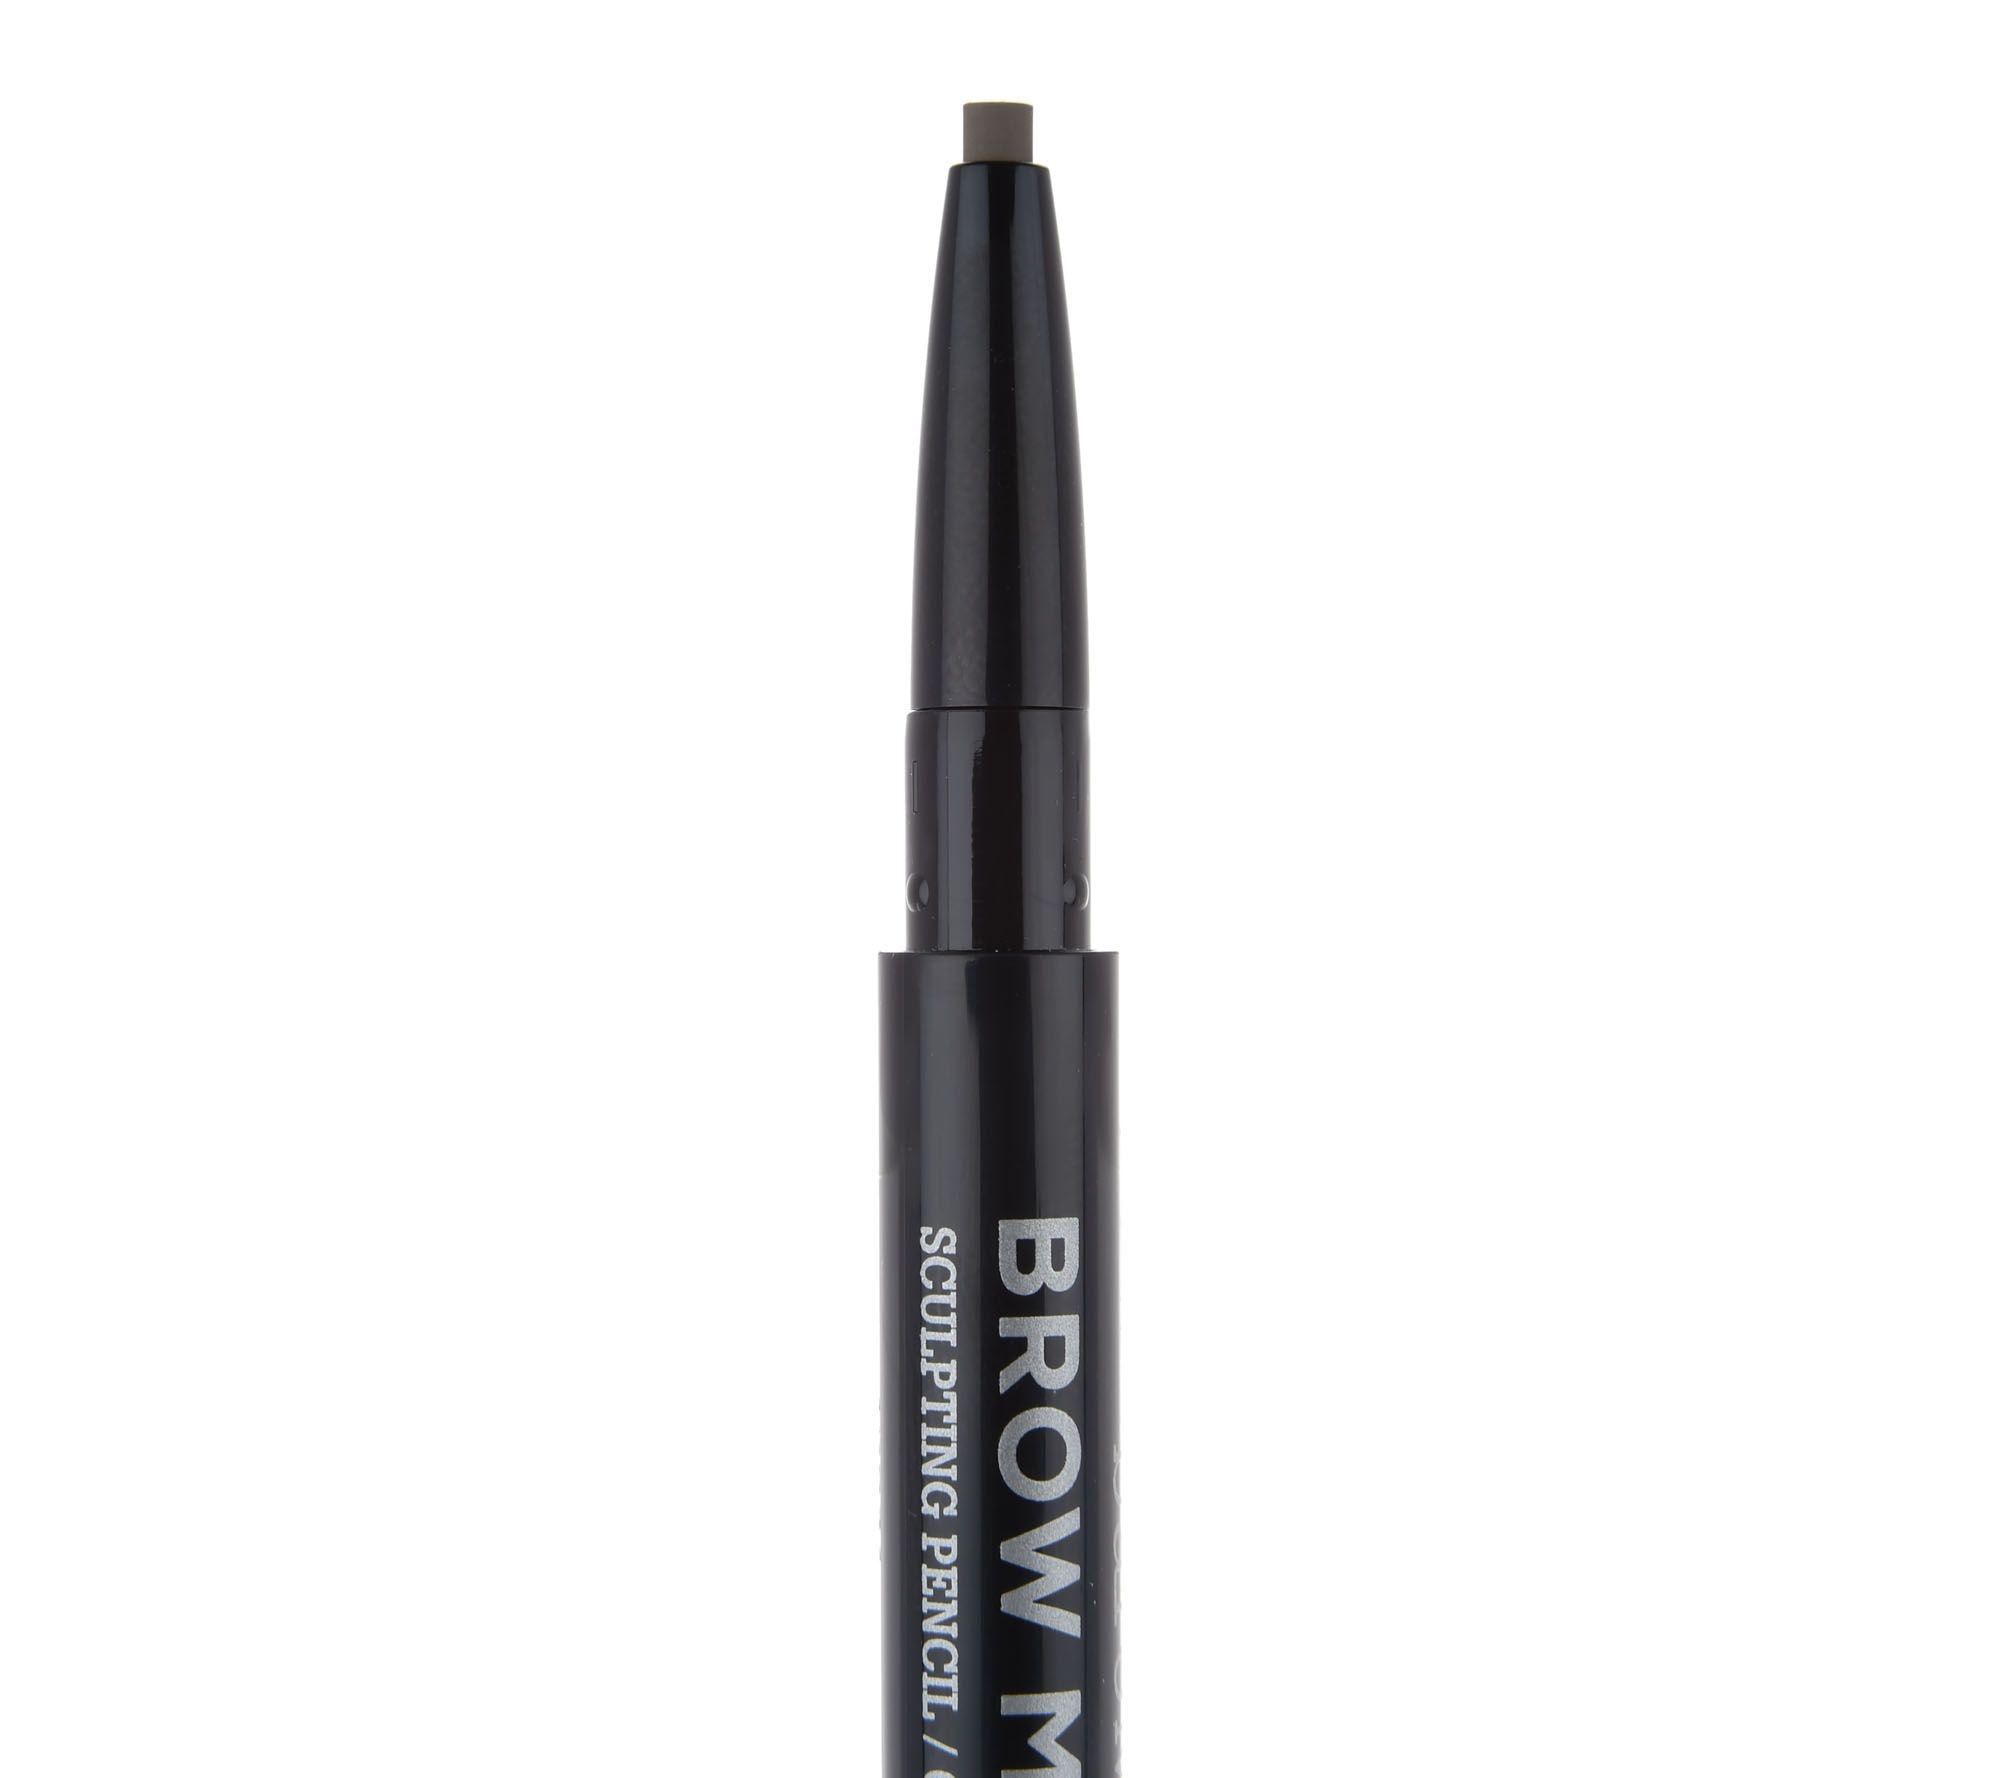 Bareminerals Brow Master Sculpting Pencil Duo Page 1 Qvc